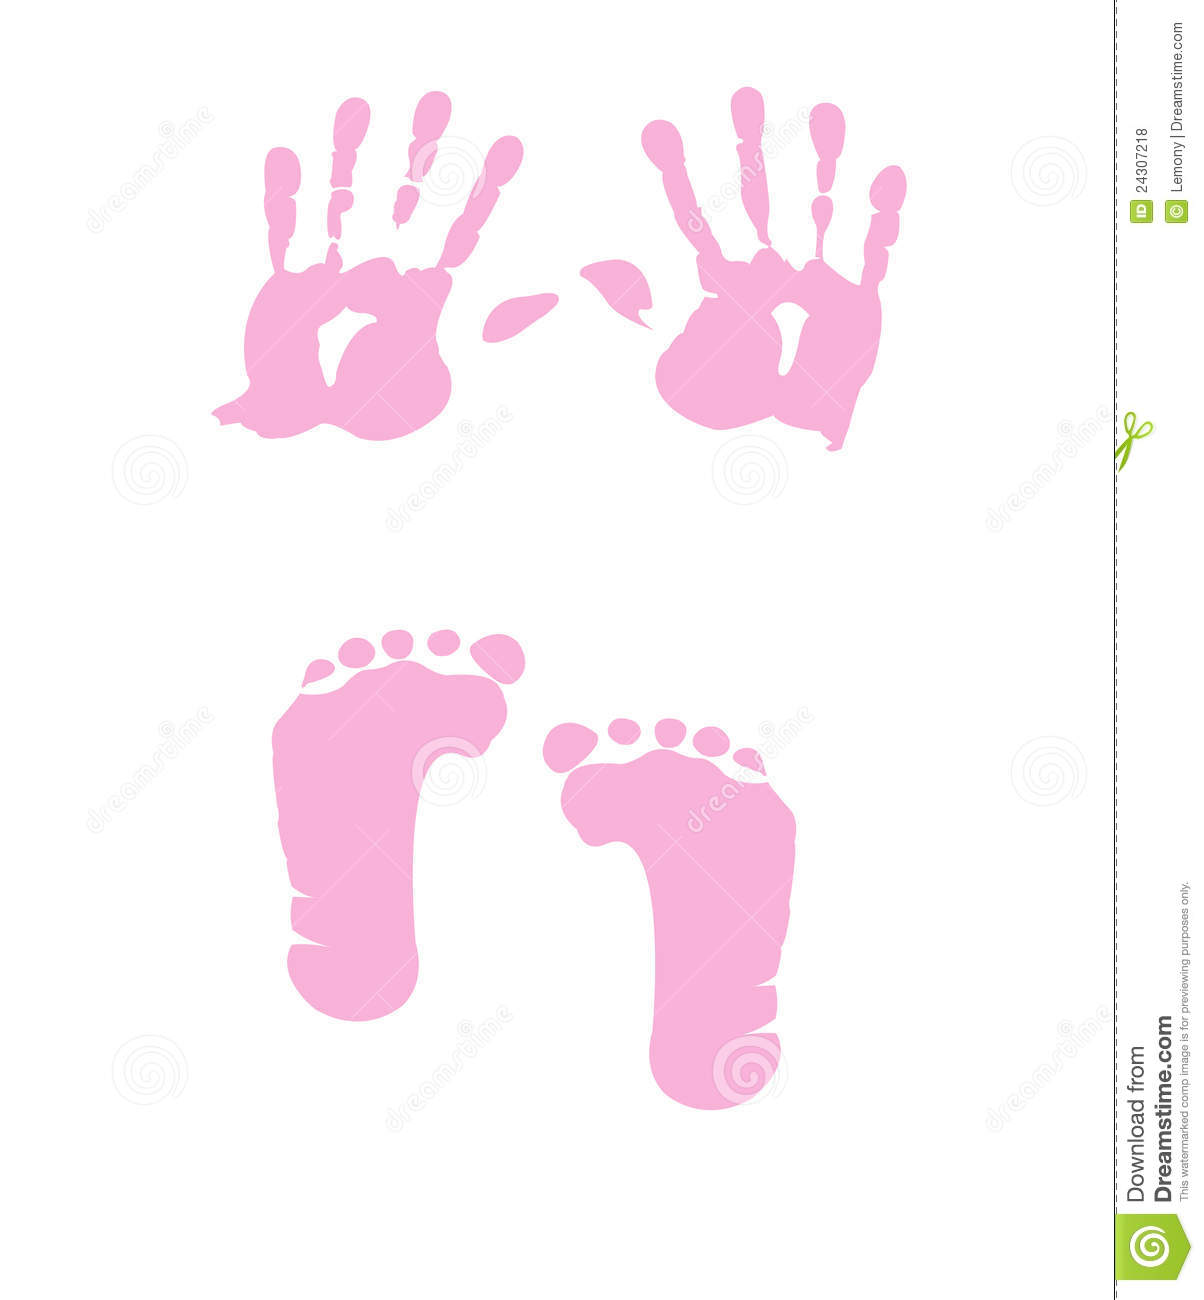 baby footprint backgrounds Images For Pink Baby Footprint Backgrounds 1204x1300